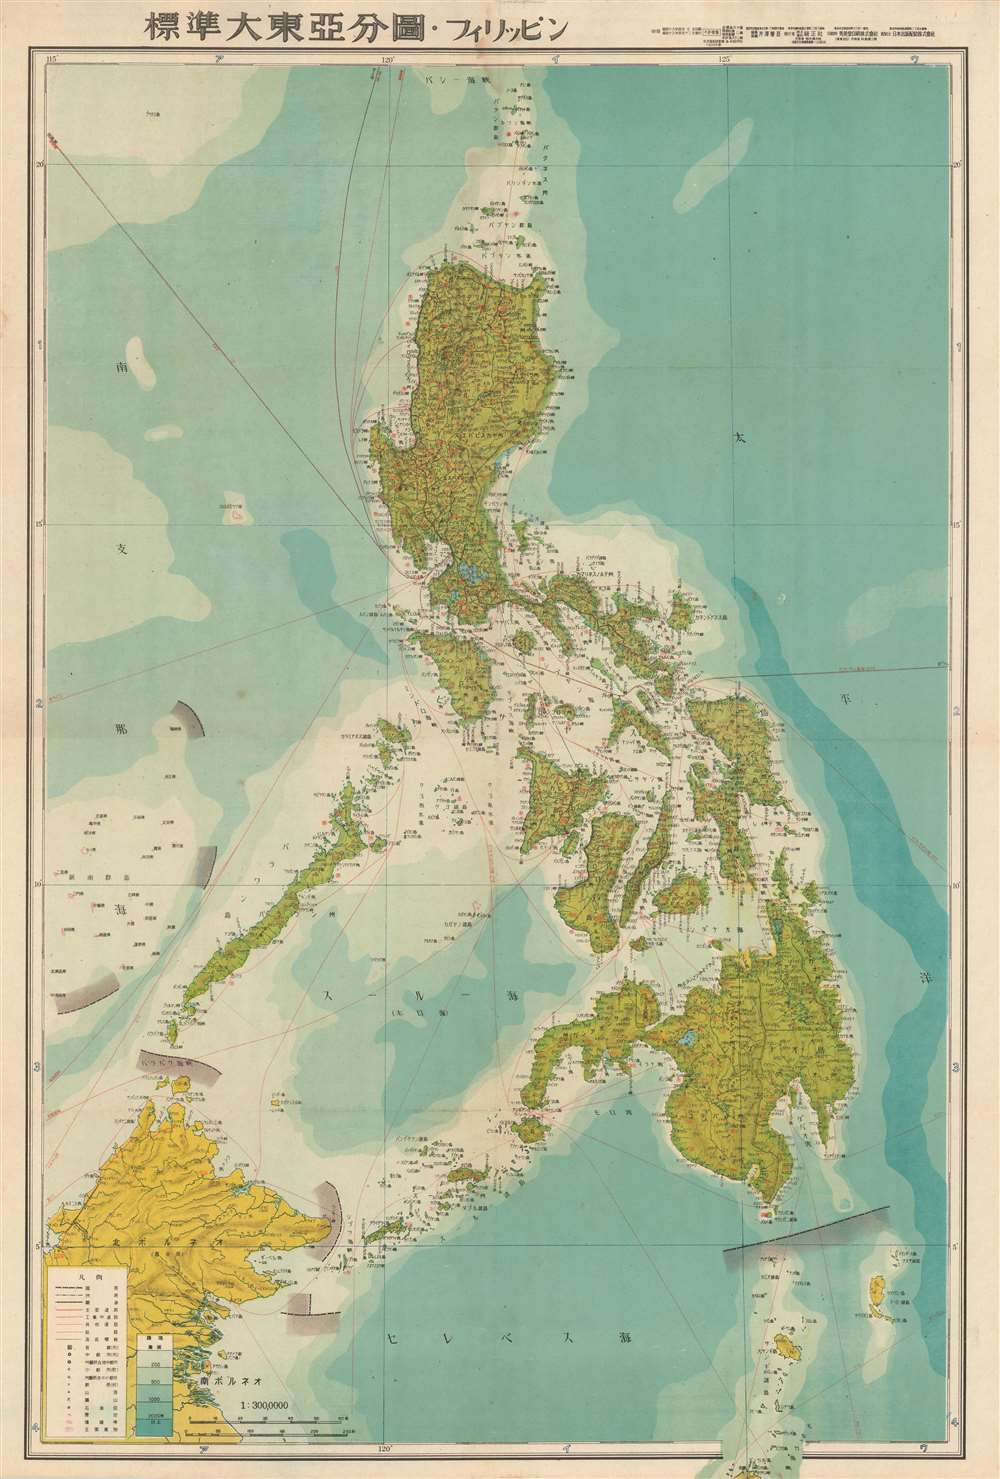 1943 or Showa 18 Japanese Coprosperity Sphere Map of the Philippines